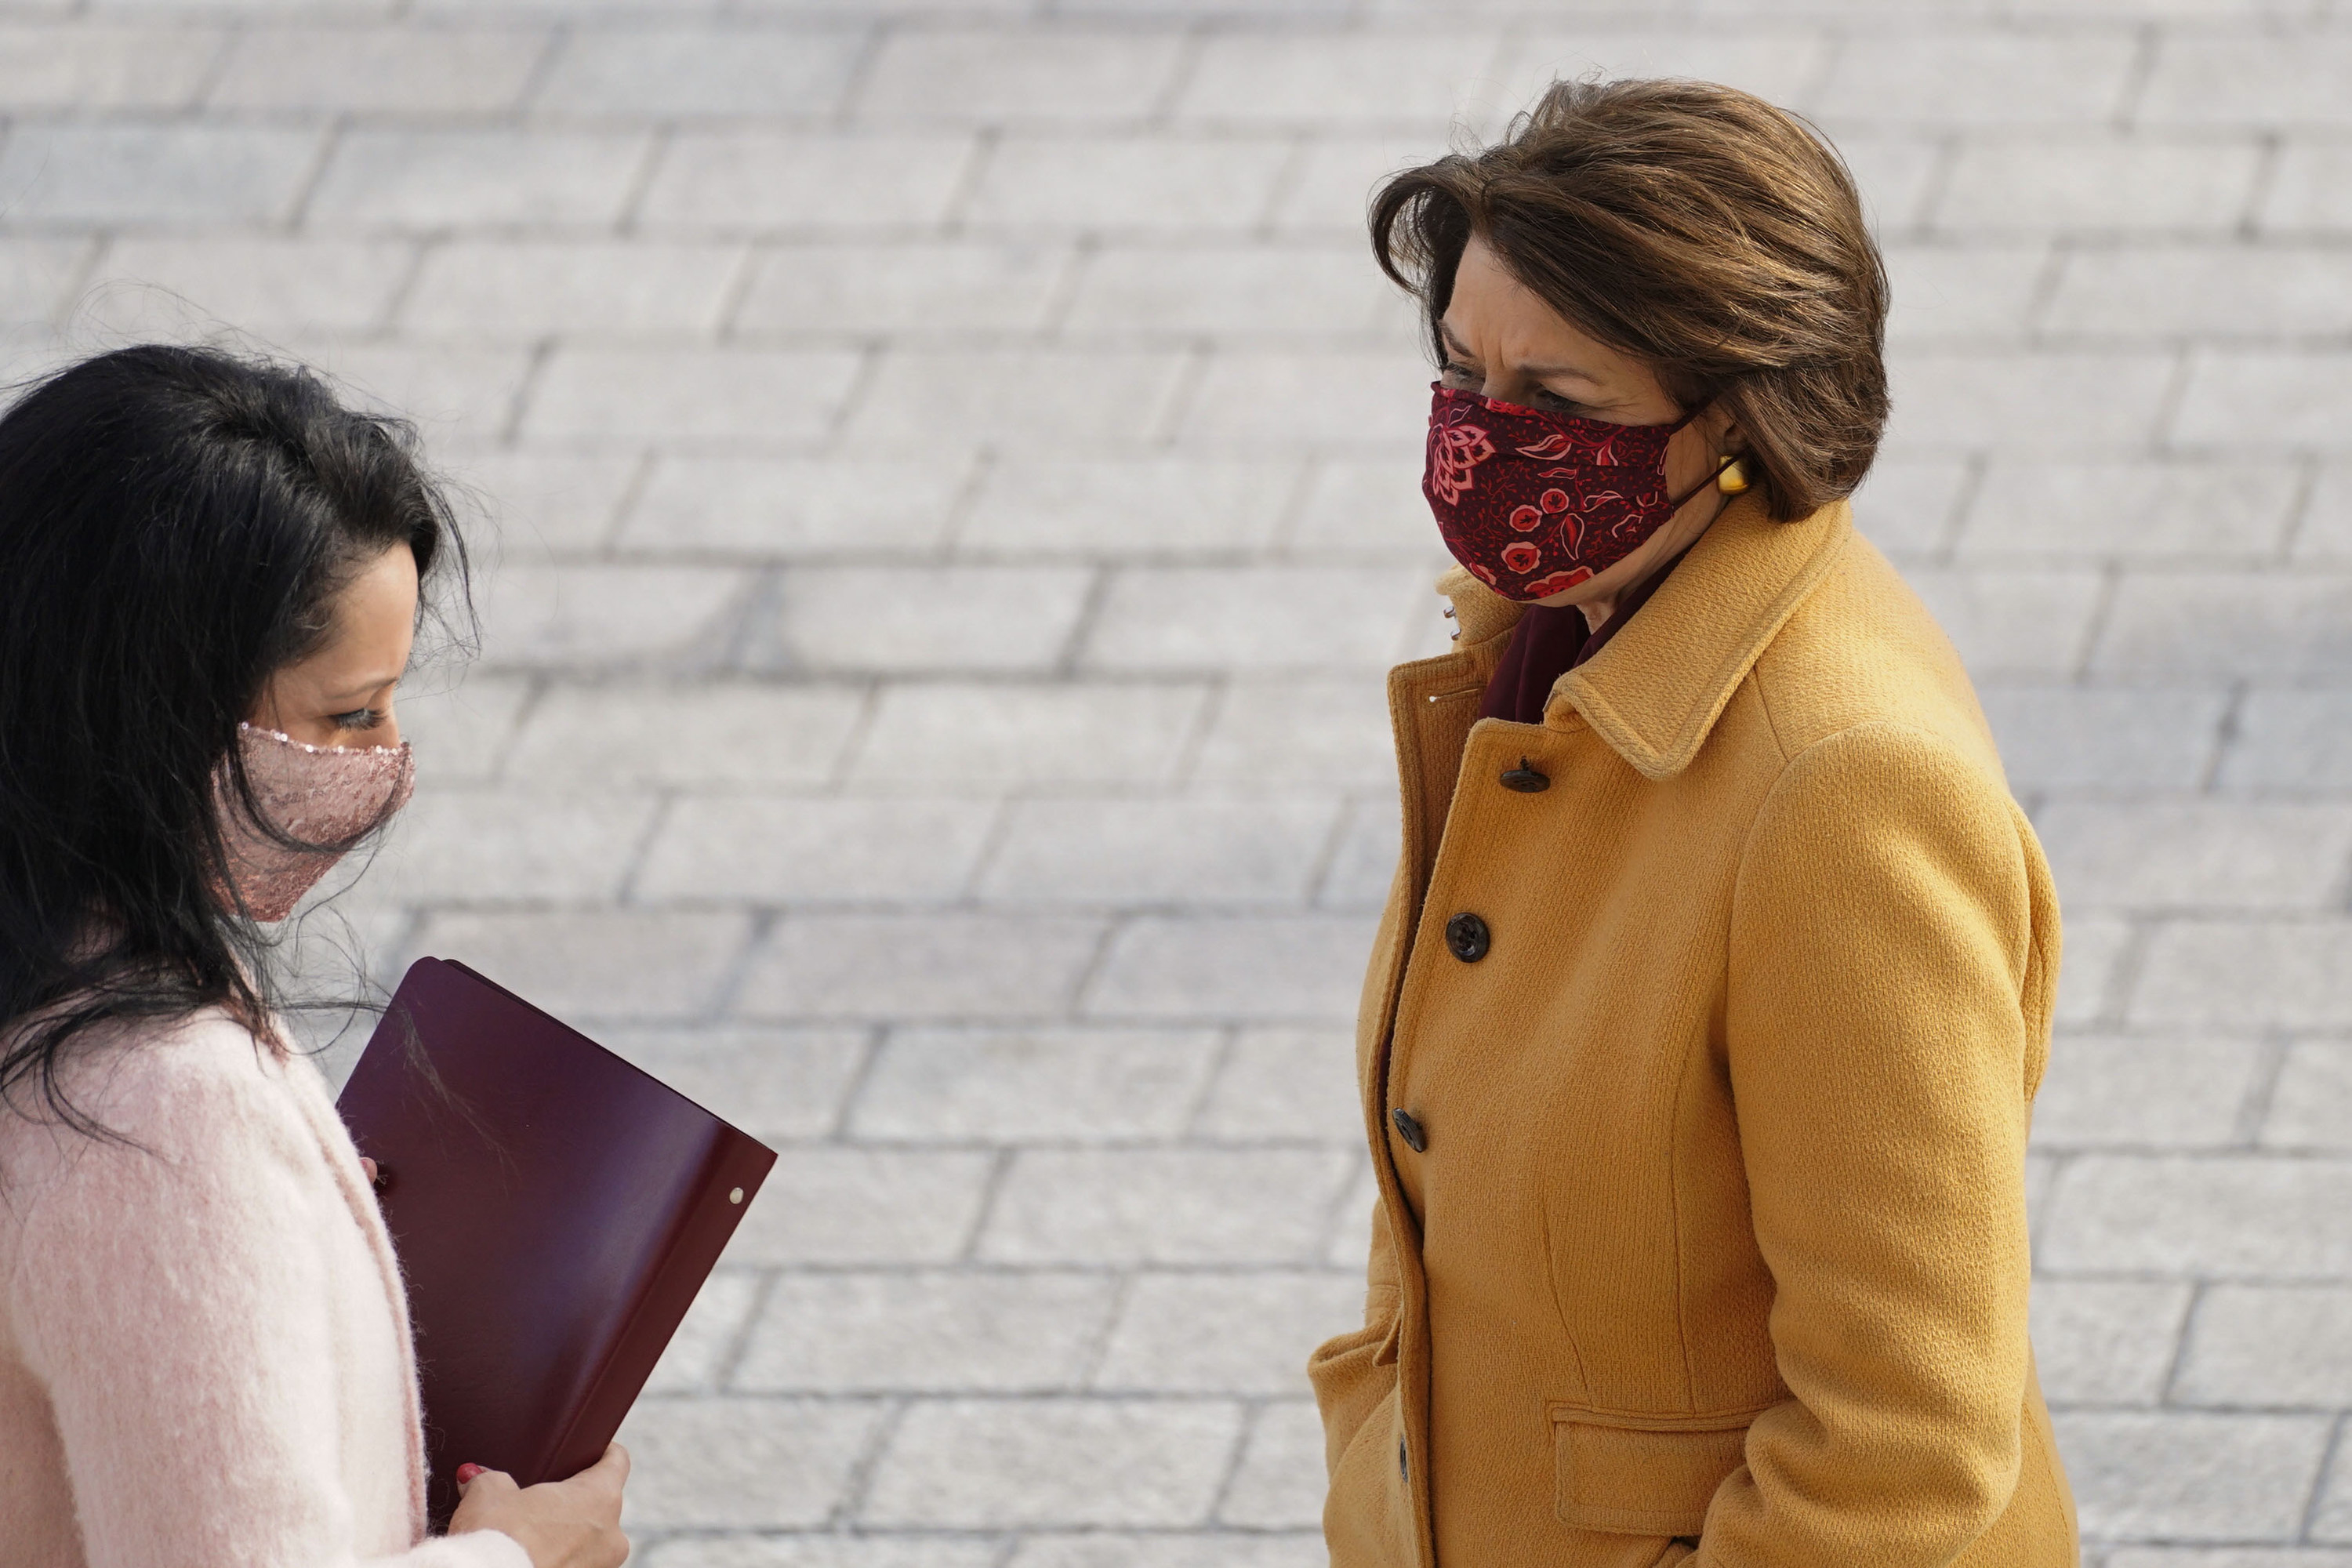 Sen. Amy Klobuchar in a yellow coat and red floral face mask at the inauguration, standing next to a woman in a pink coat and pink face mask.